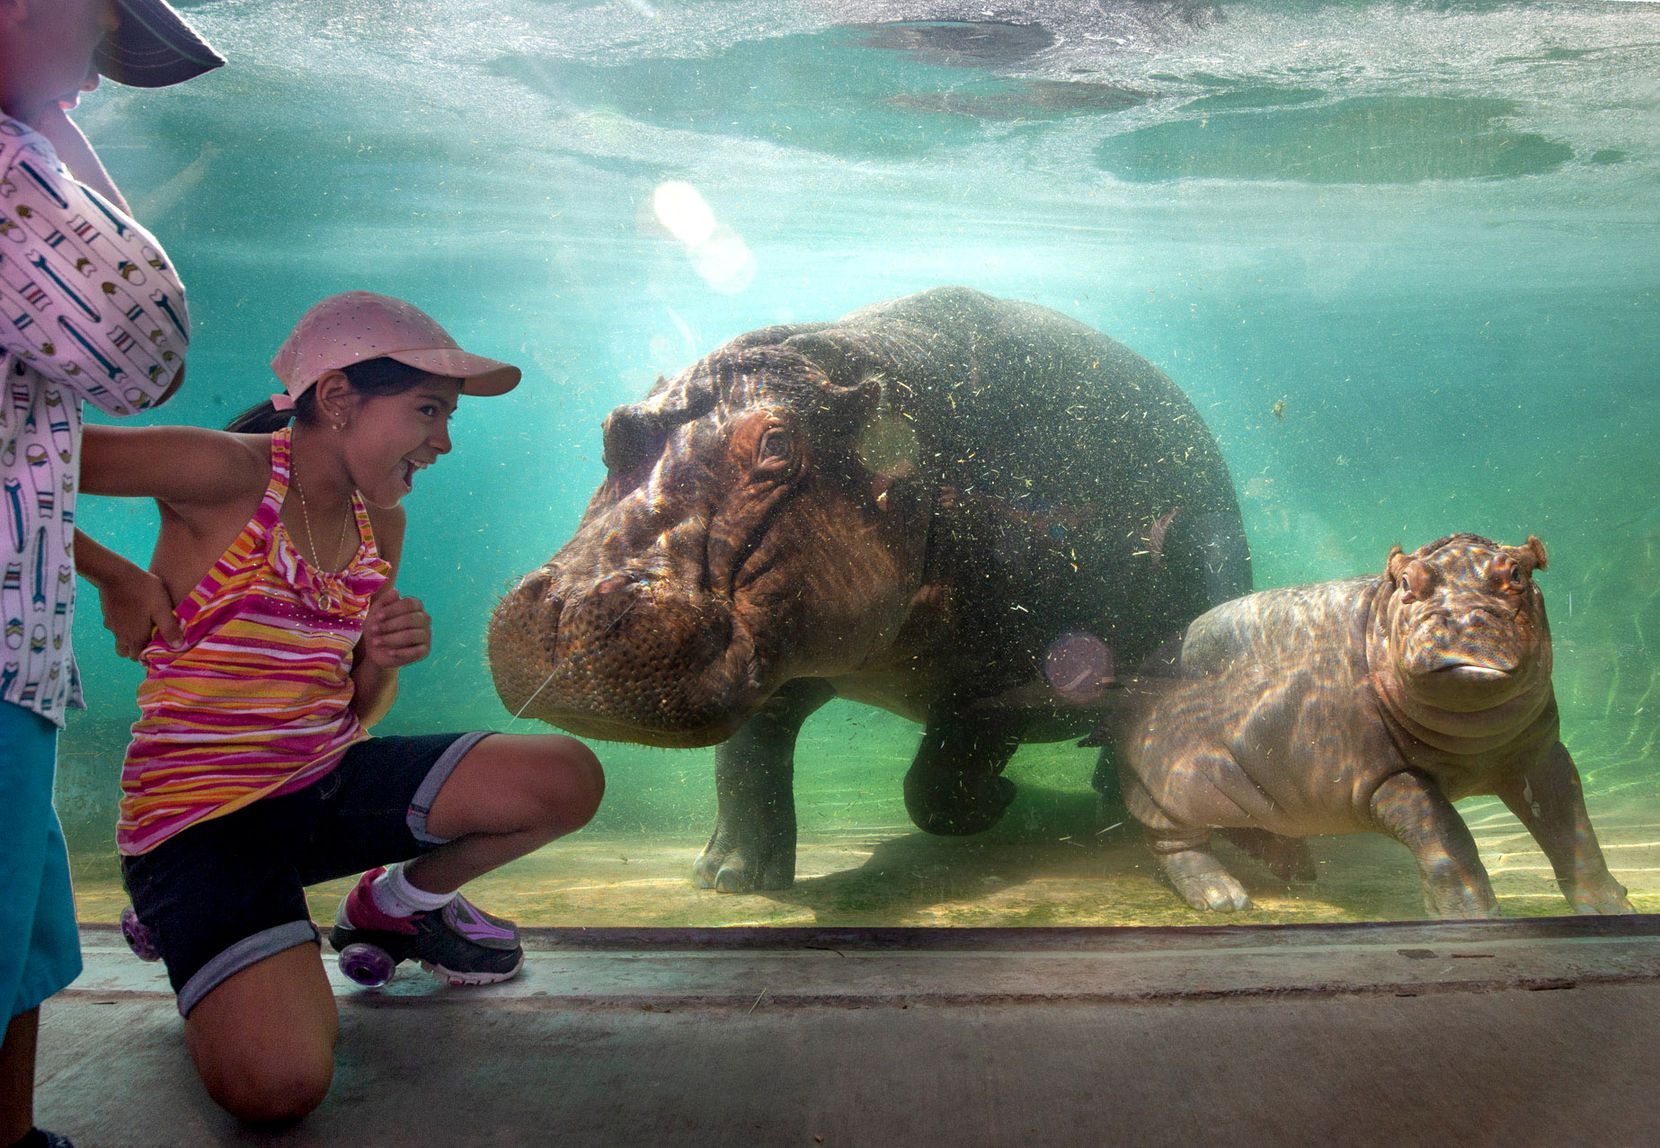 Four-year-old Dylan Gutierrez (left) and 10-year-old Melanie Gutierrez greet hippo Boipelo and her baby hippo, Adanna, in Dallas on July 18, 2019, during the Dallas Zoo's annual summer Dollar Day, when admission costs only a dollar.